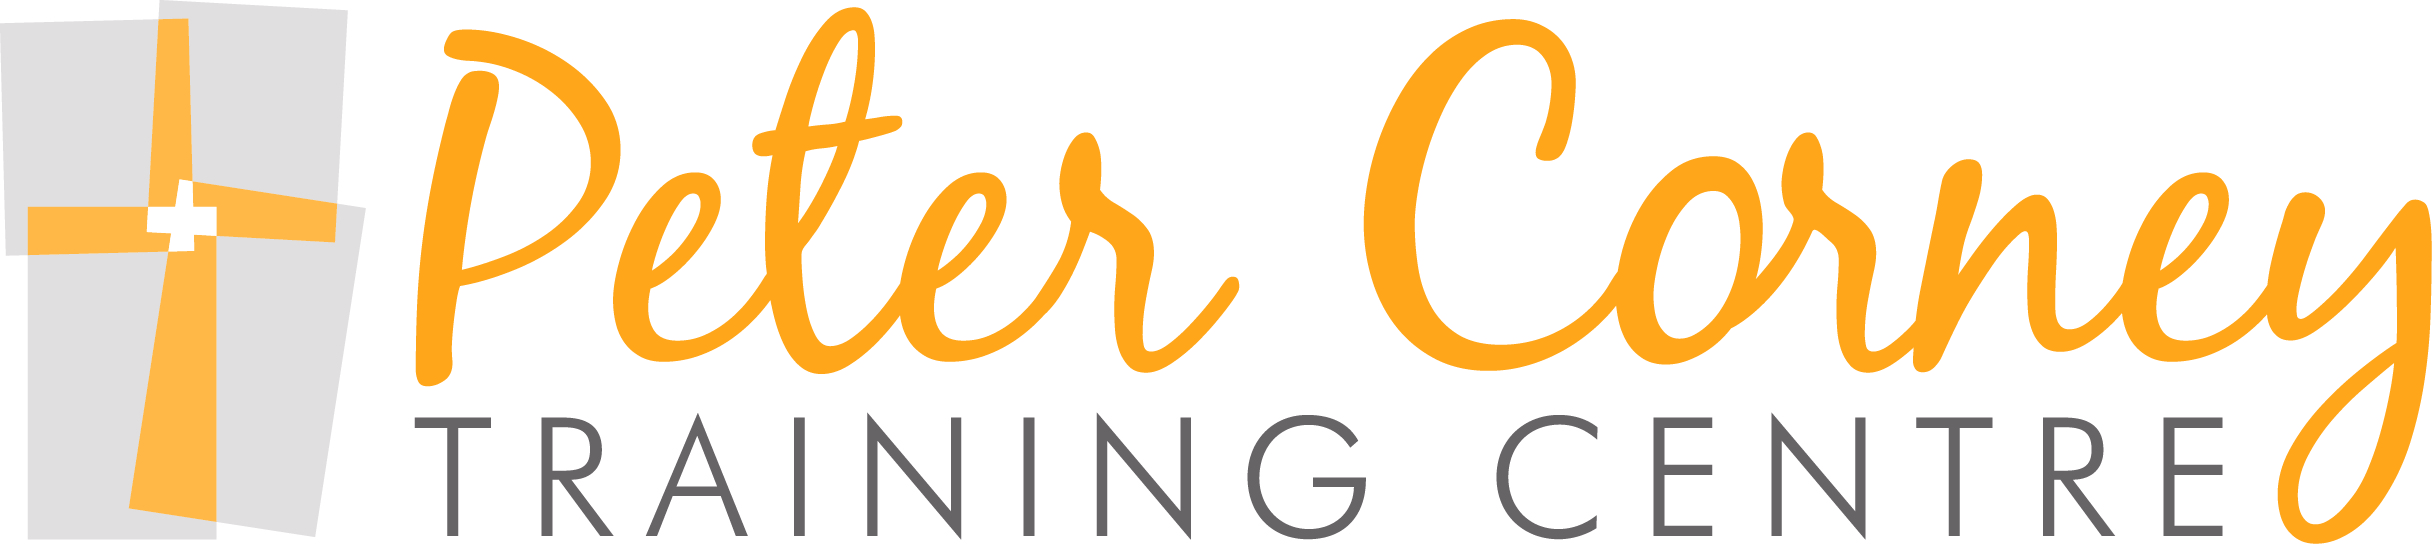 Peter Corney Training Centre logo